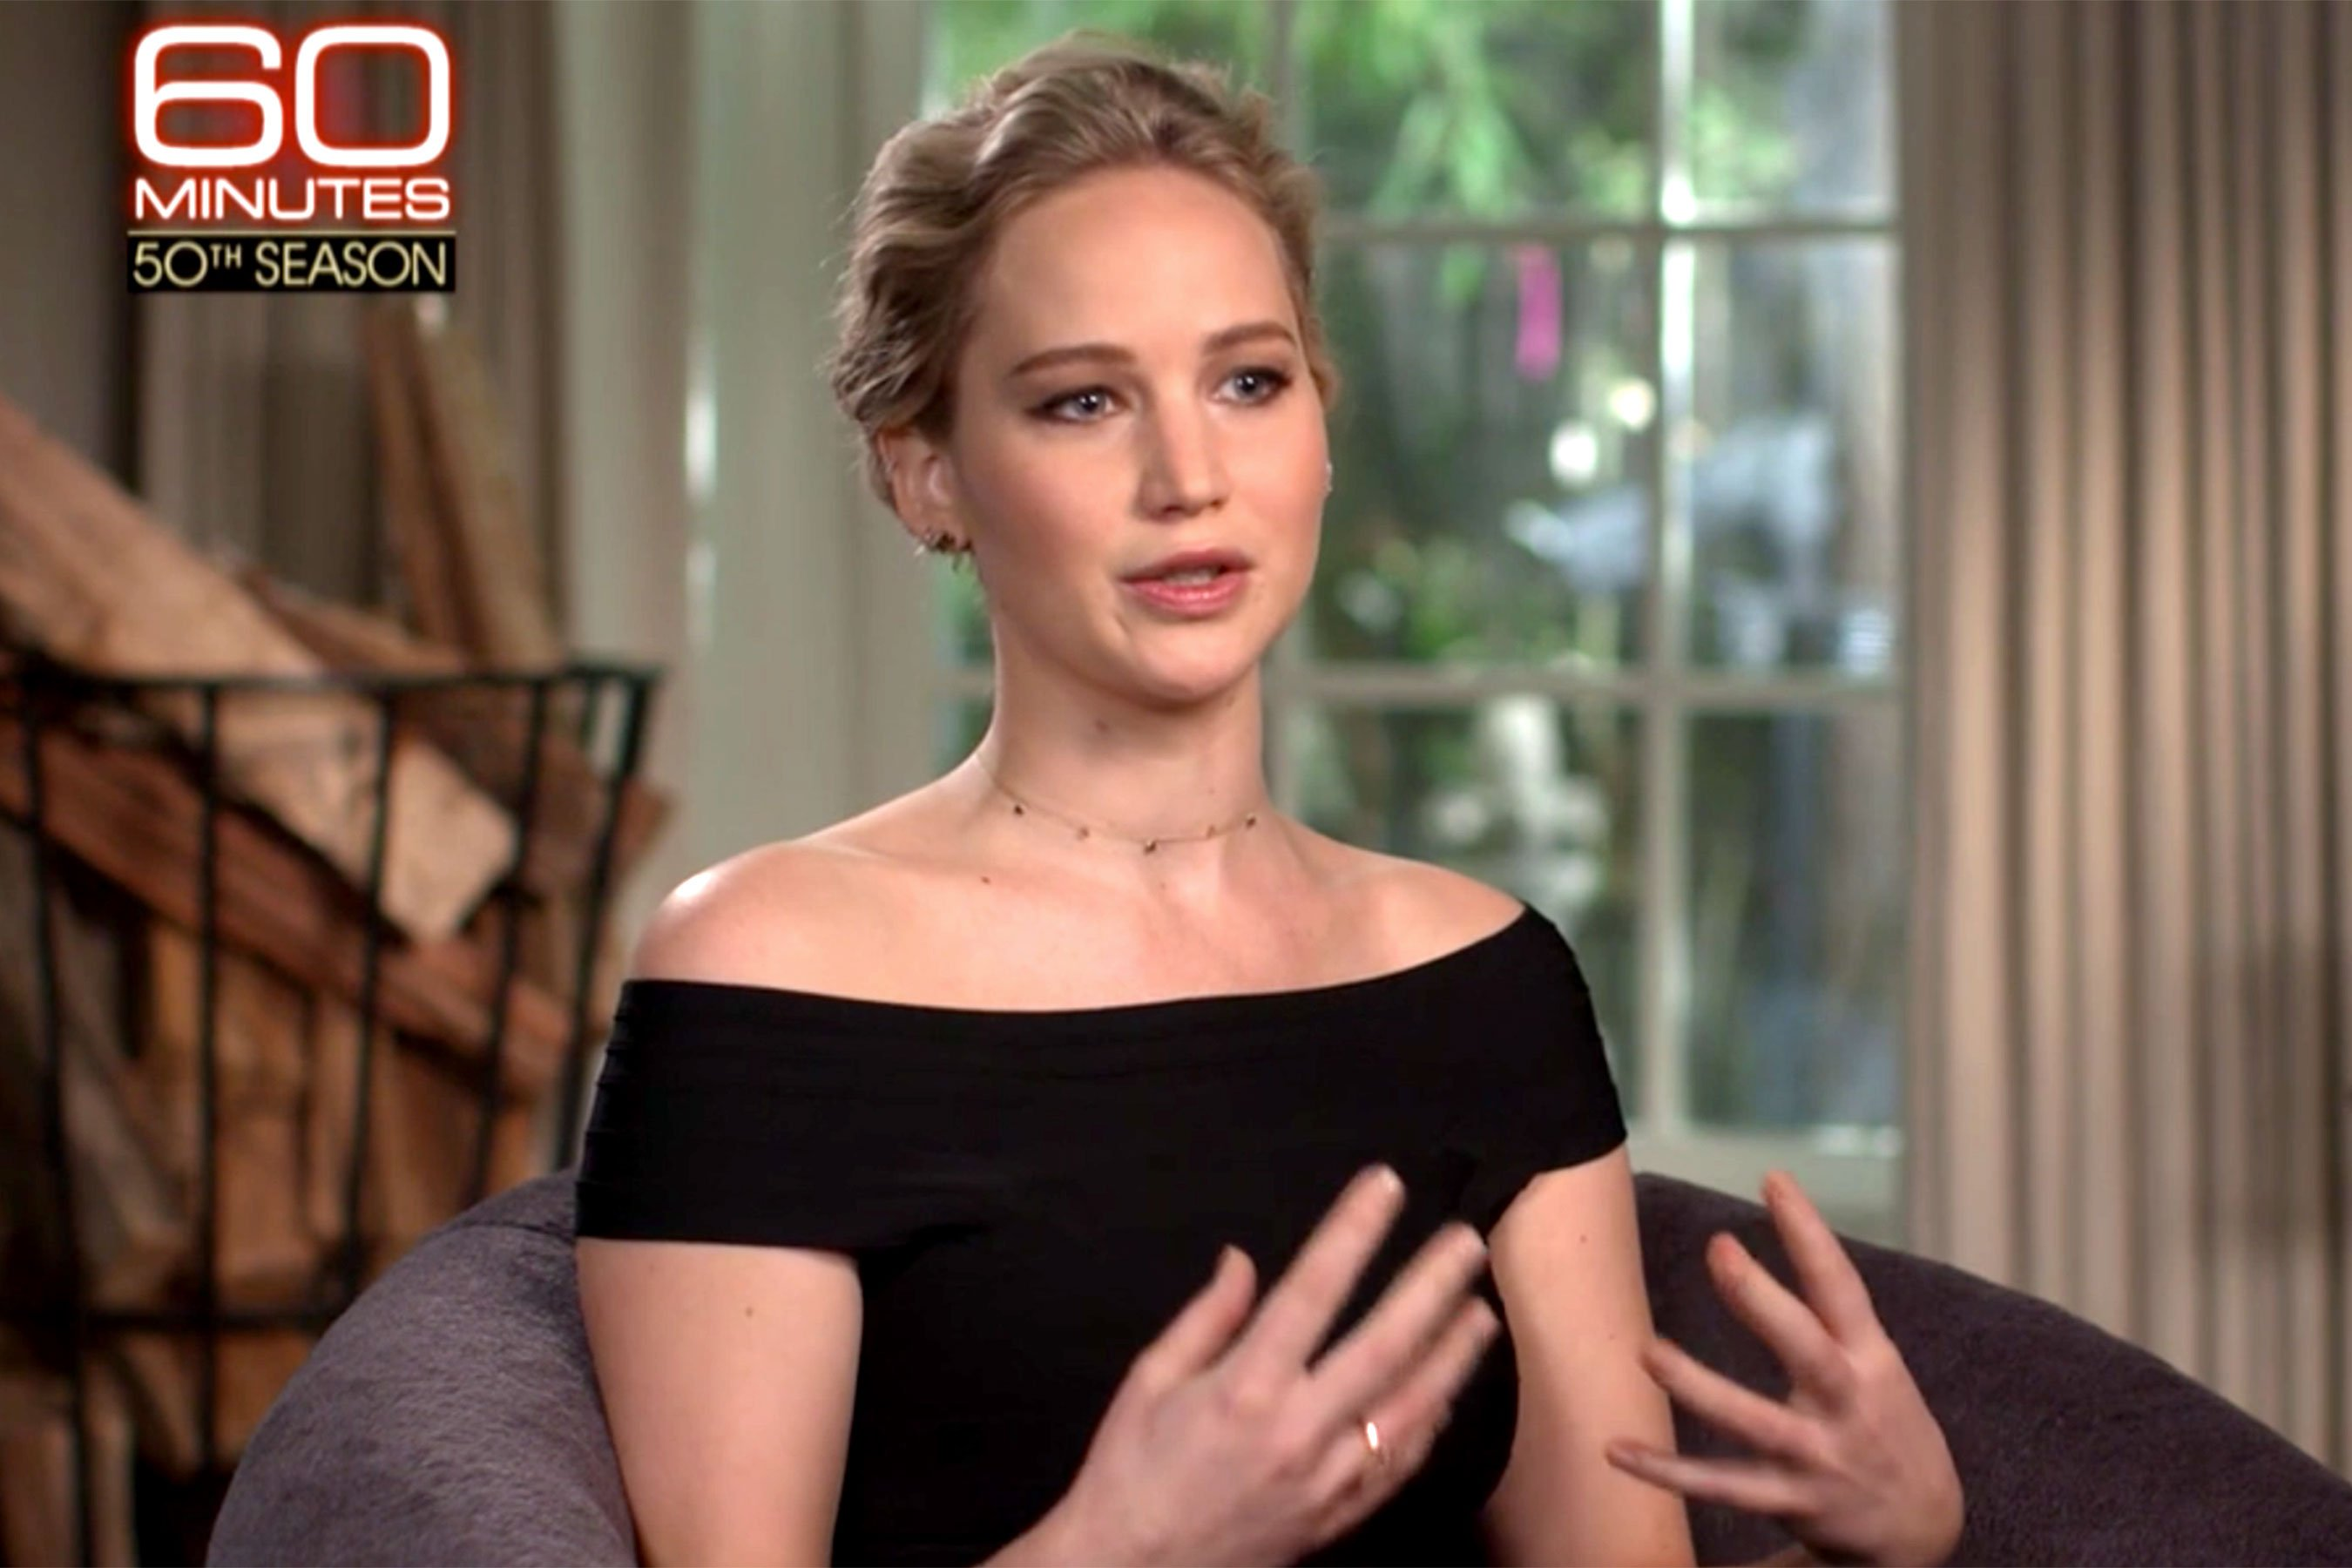 Jennifer Lawrence on 60 Minutes: I don't regret dropping out of middle school